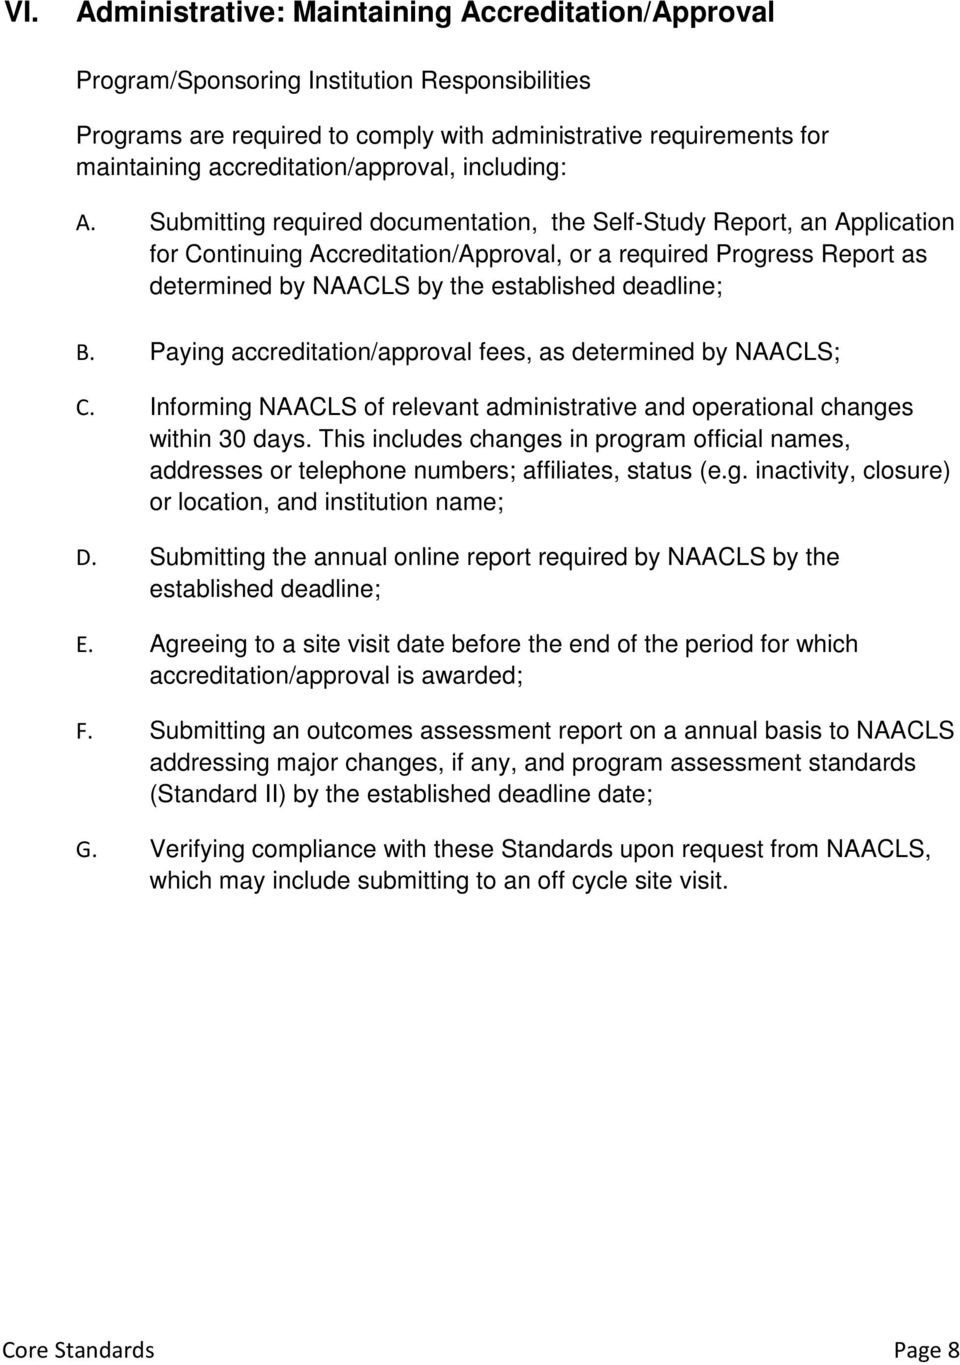 Submitting required documentation, the Self Study Report, an Application for Continuing Accreditation/Approval, or a required Progress Report as determined by NAACLS by the established deadline; B.